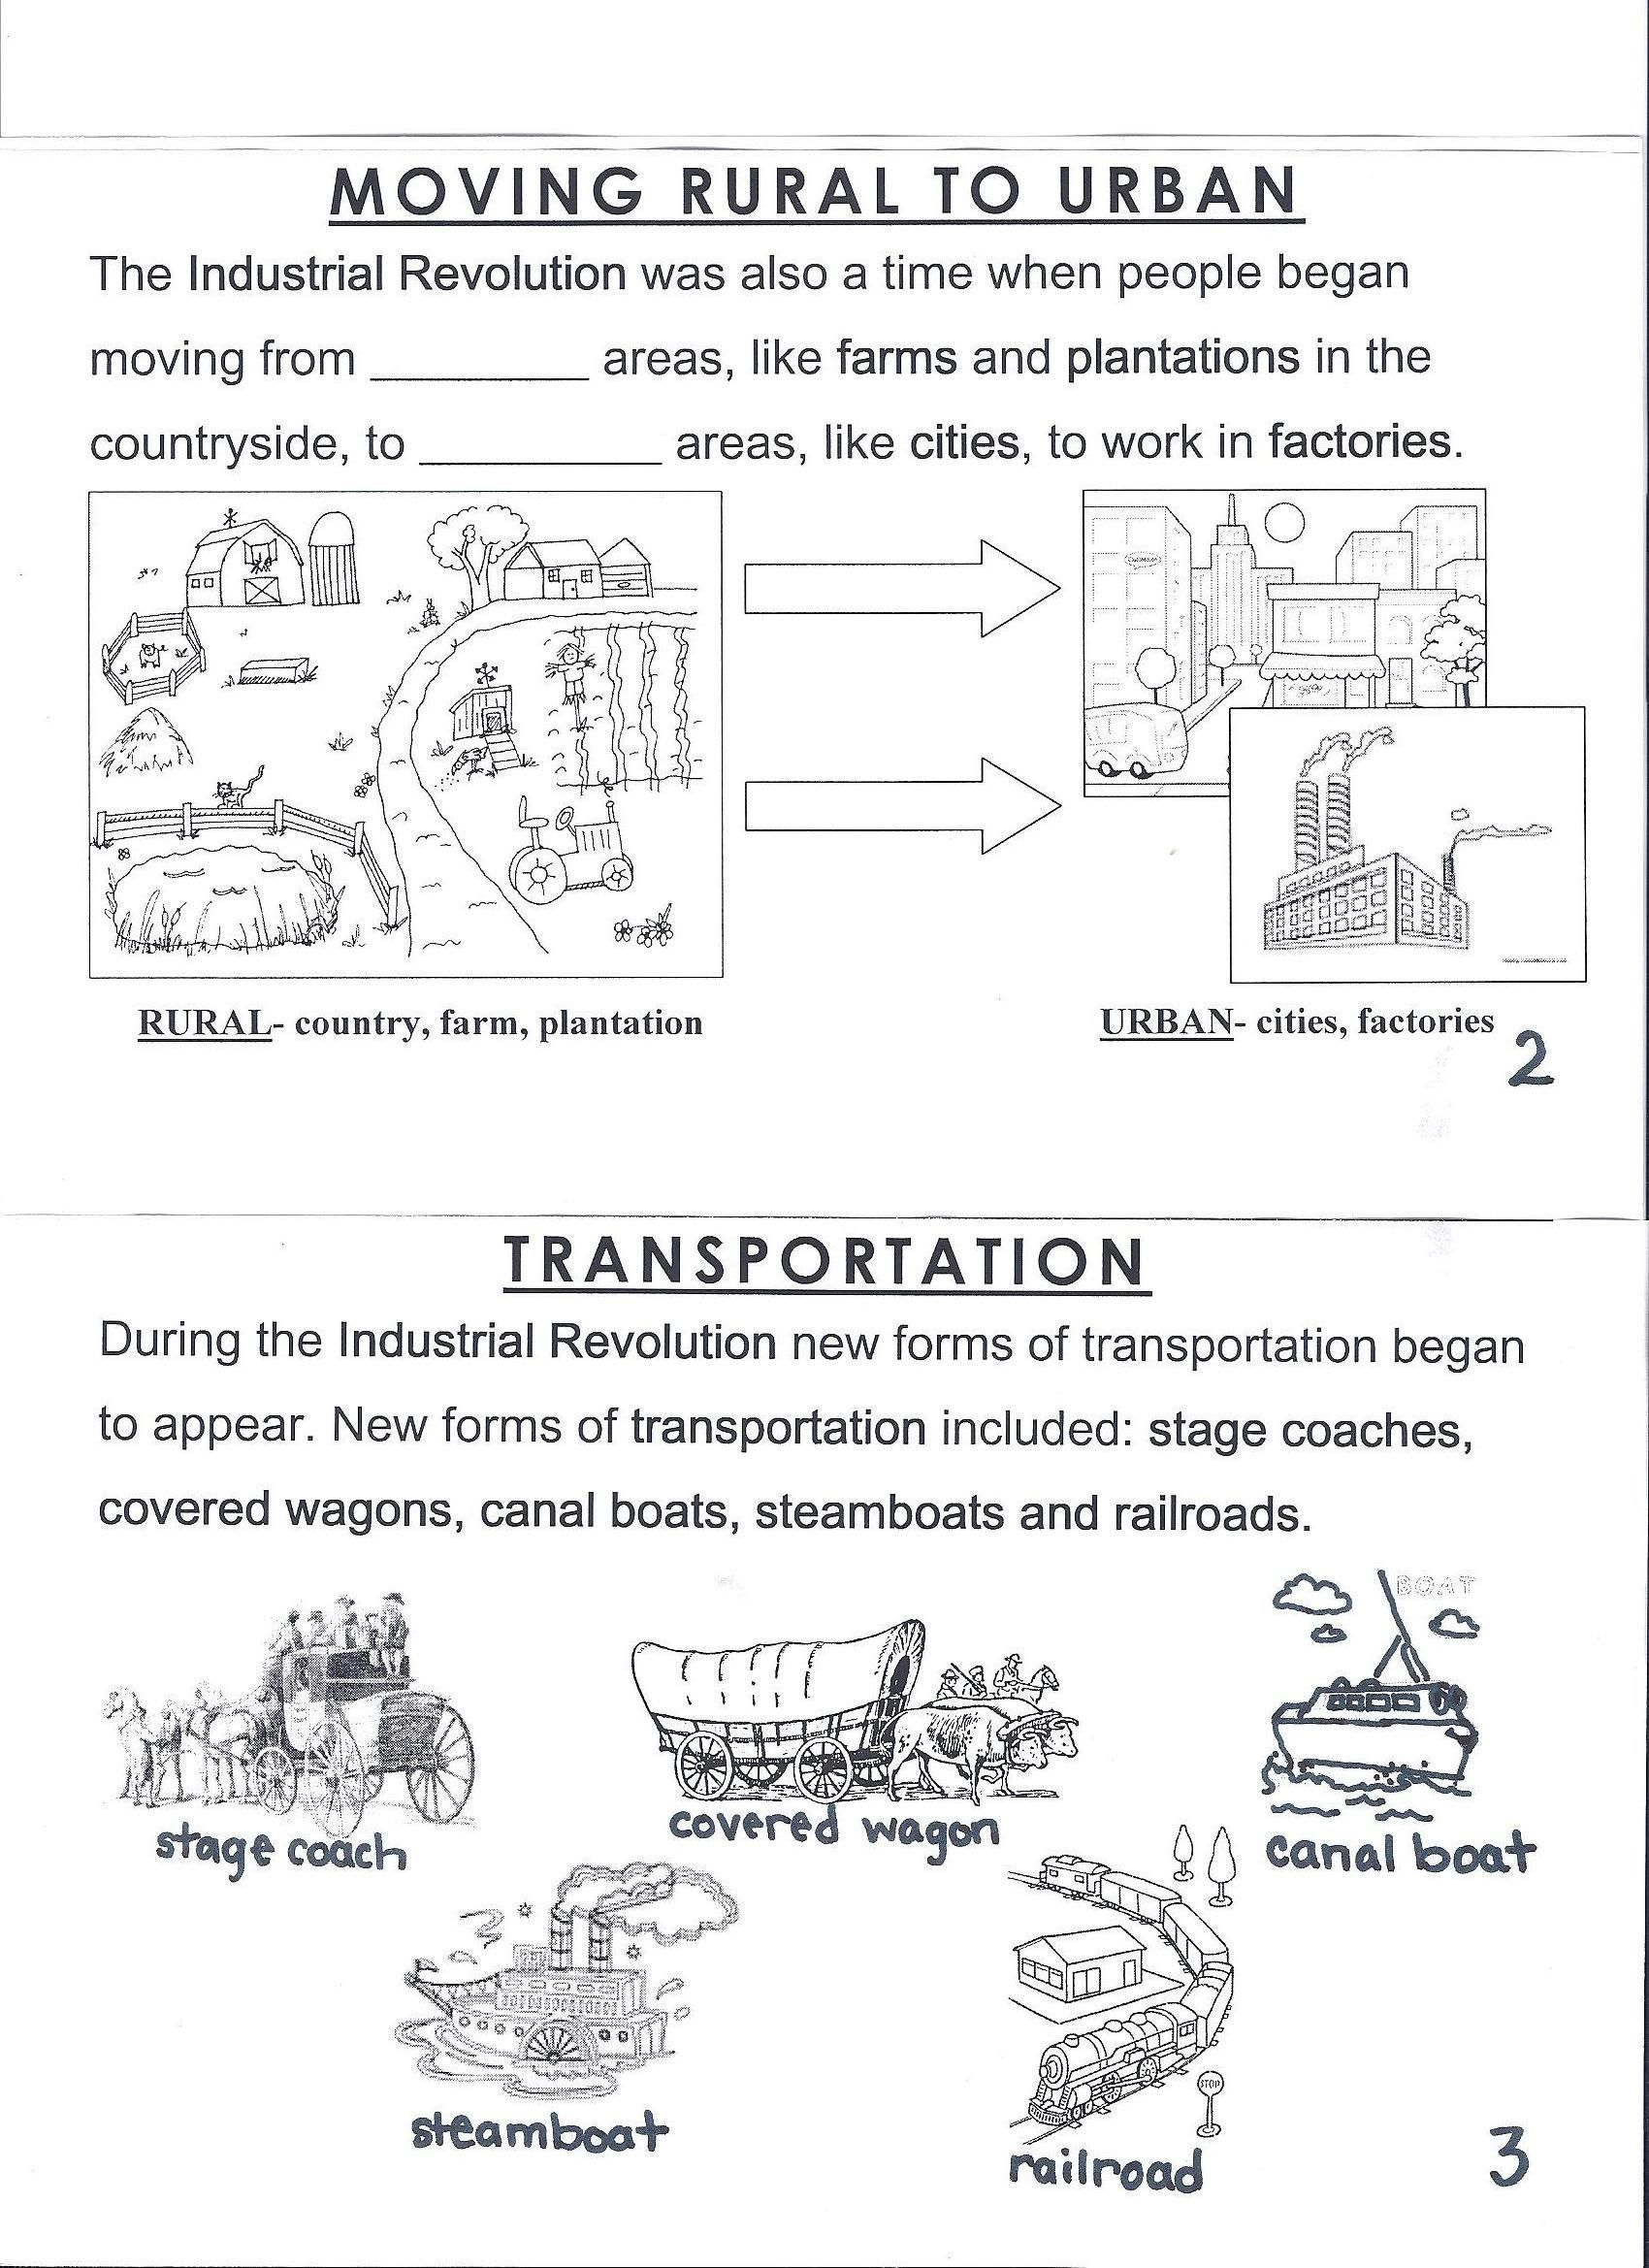 Worksheets Industrial Revolution Worksheets industrialrevolution2 jpg pixels ss 8 pinterest pixels